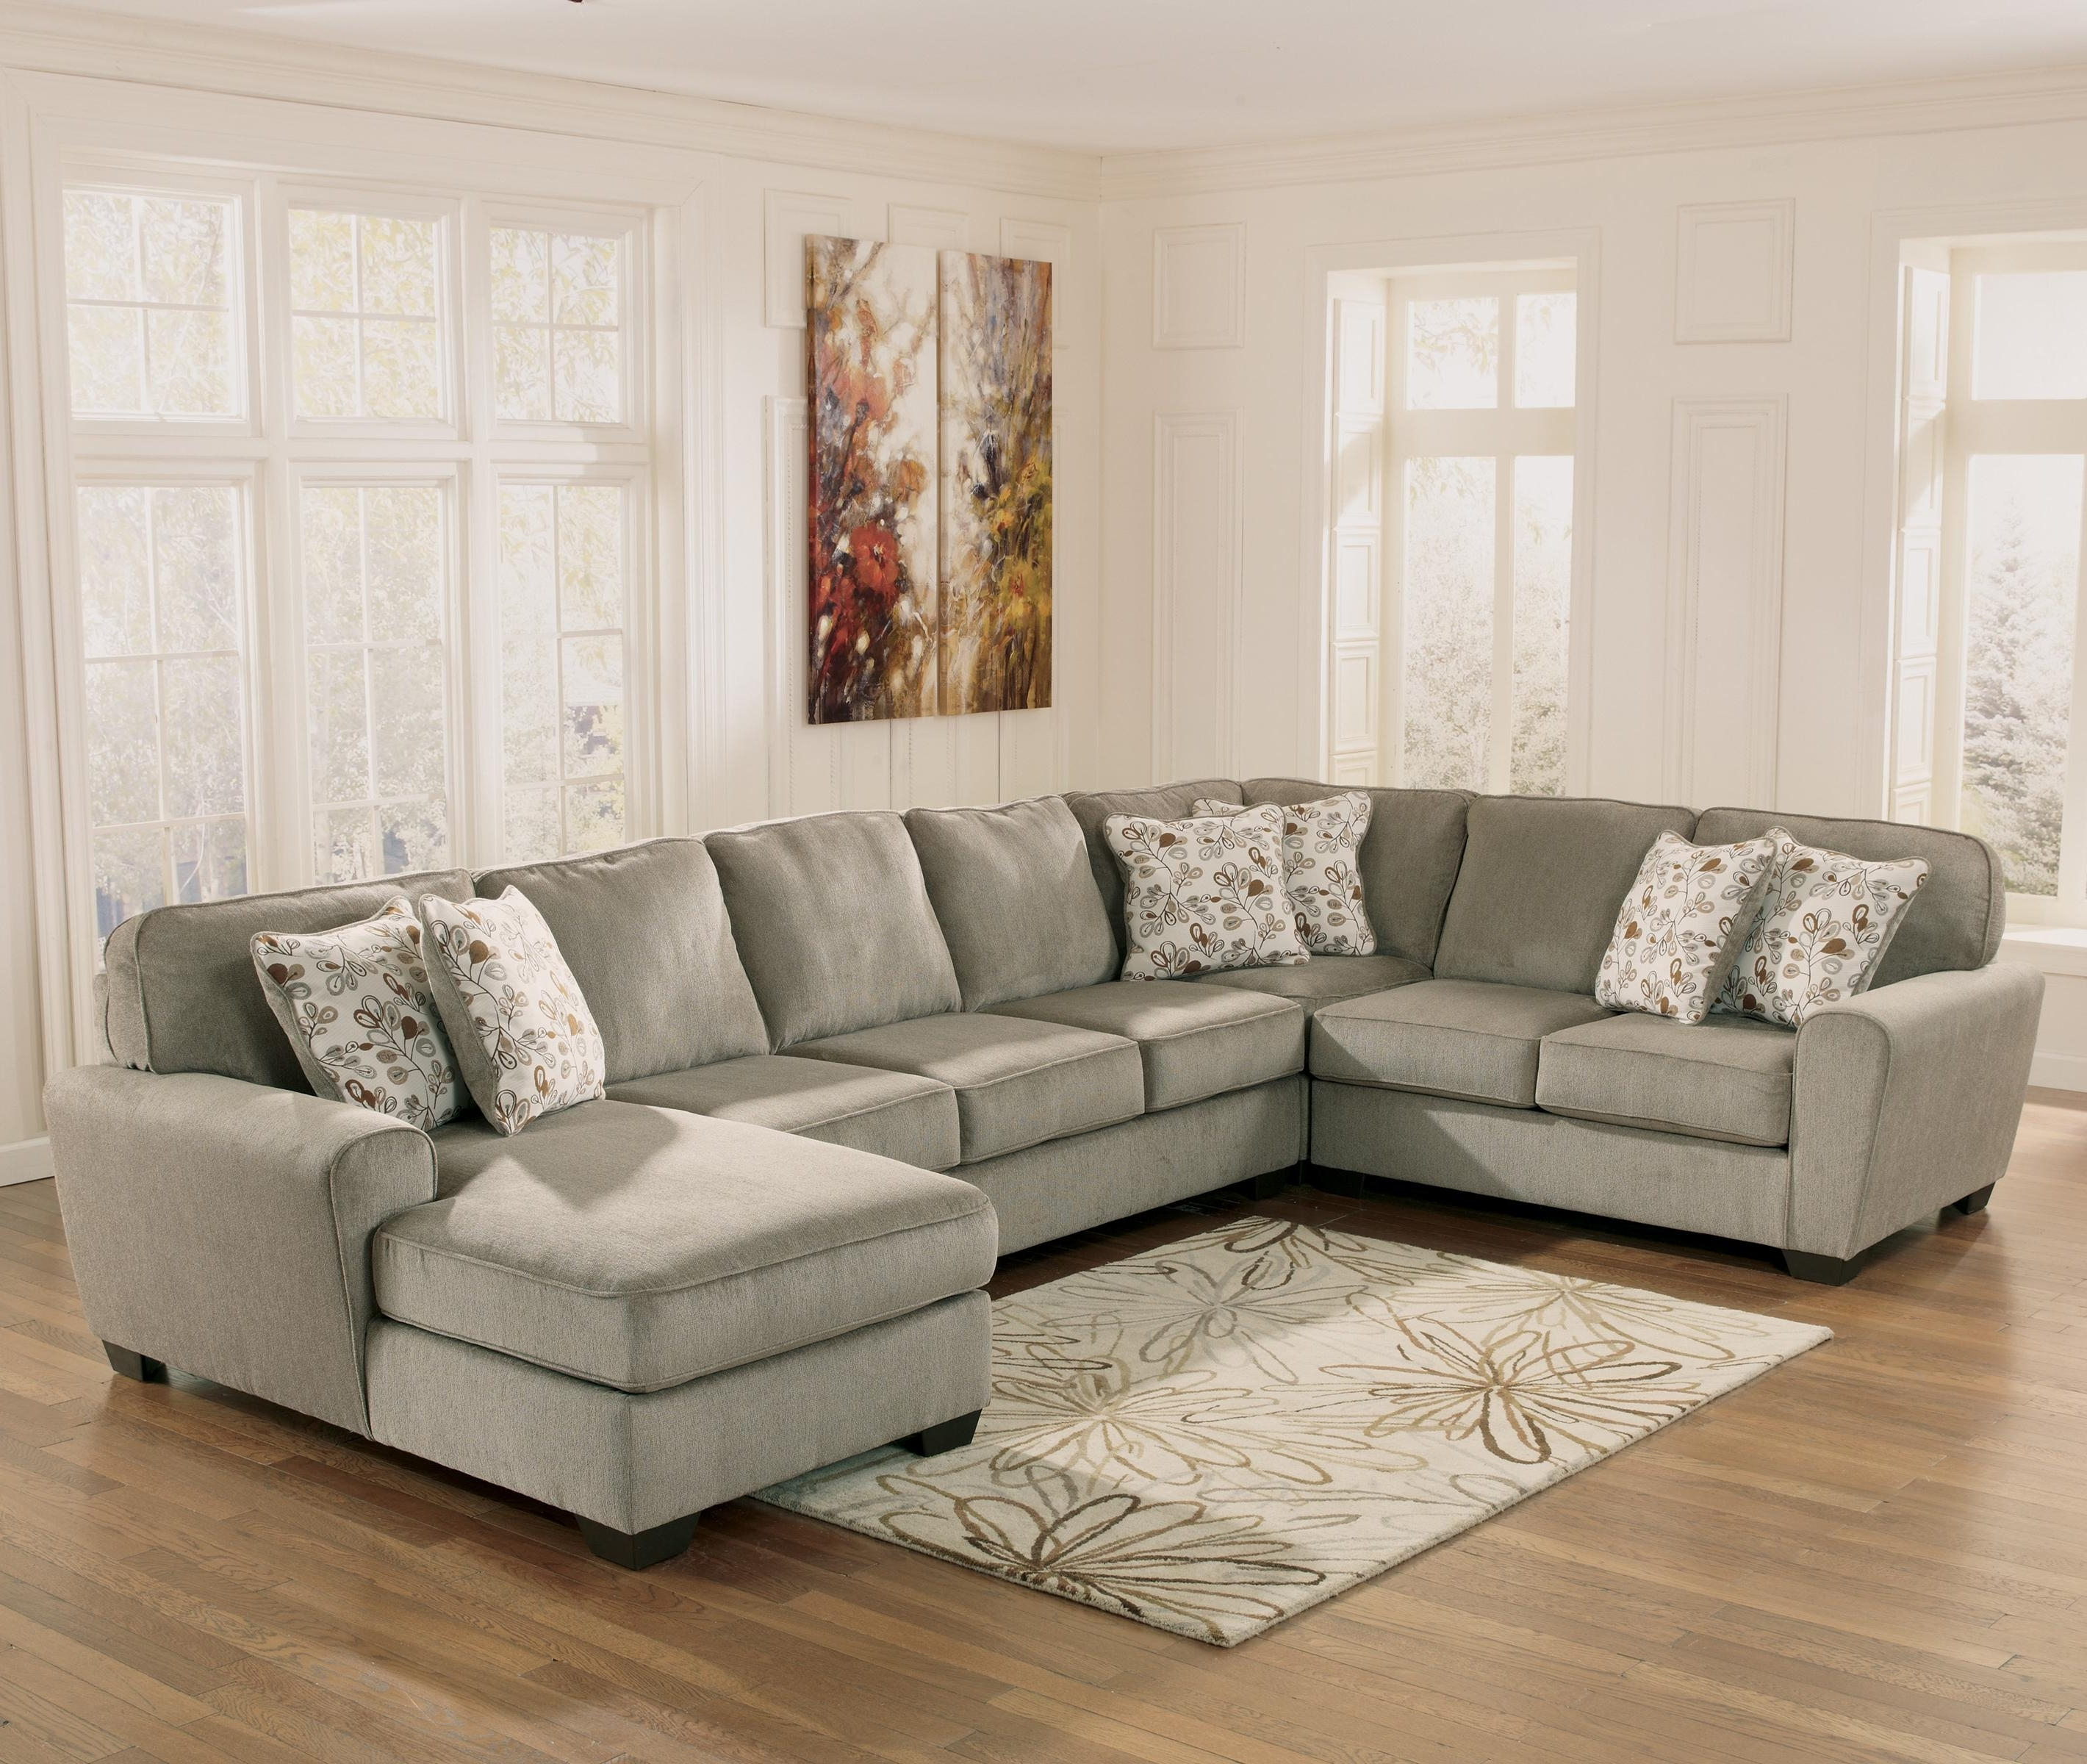 Ashley Furniture Chaise Sofas Inside Most Current Ashley Furniture Patola Park – Patina 4 Piece Sectional With Right (View 2 of 15)